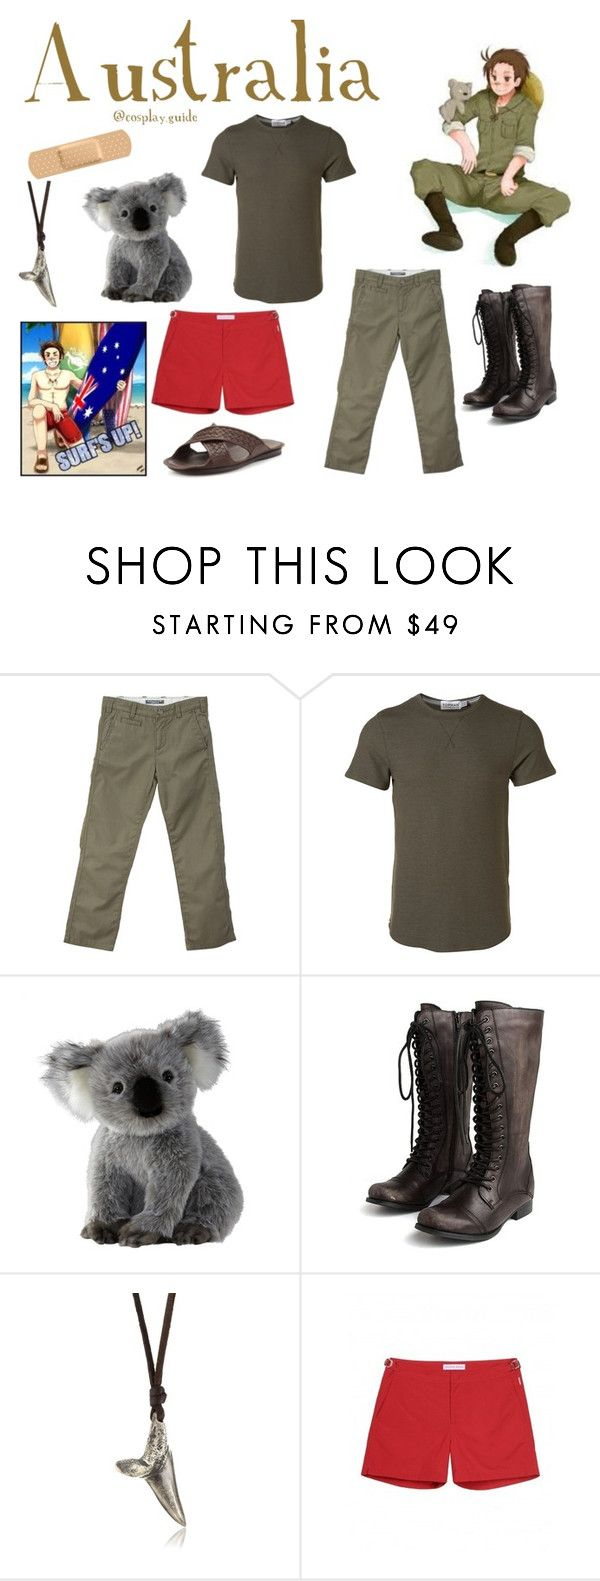 """Australia Hetalia cosplay outfit"" by consultingpolyvorer ❤ liked on Polyvore featuring Elijah, Topman, Miz Mooz, M.Cohen Handmade Designs, Orlebar Brown and Bottega Veneta"